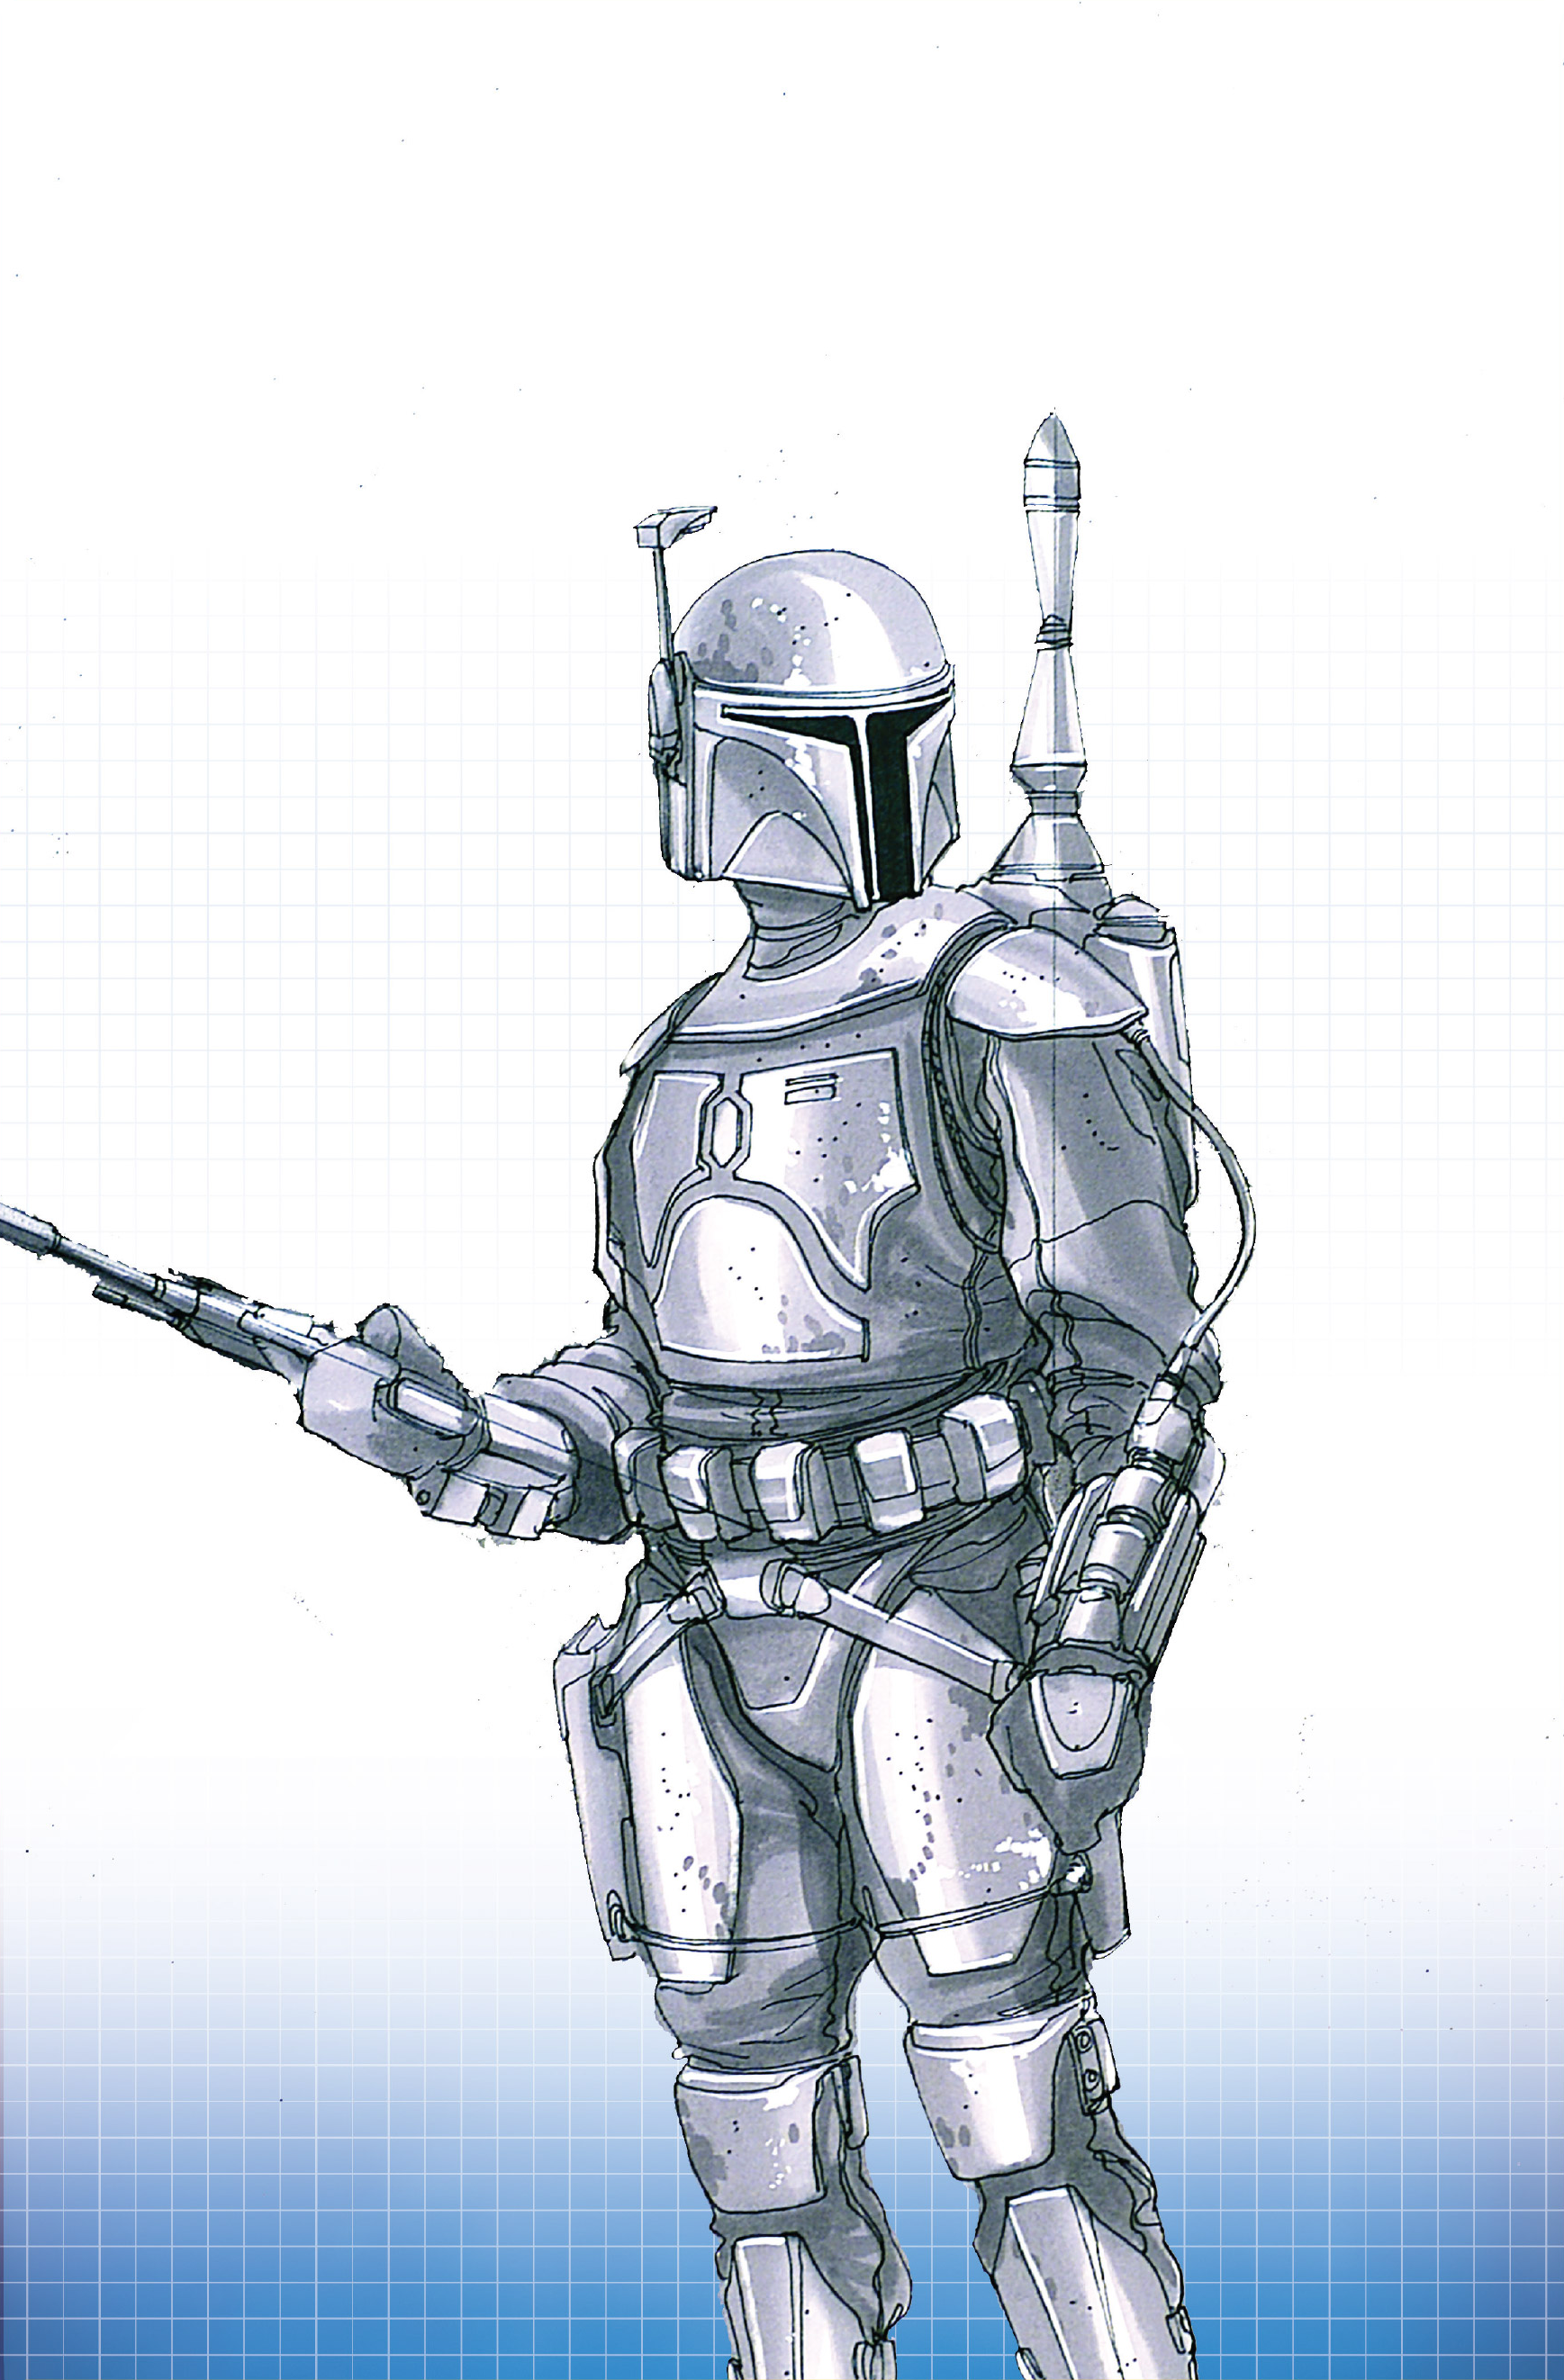 Star Wars Jango Fett printable page to color | Coloring pages | 2644x1737